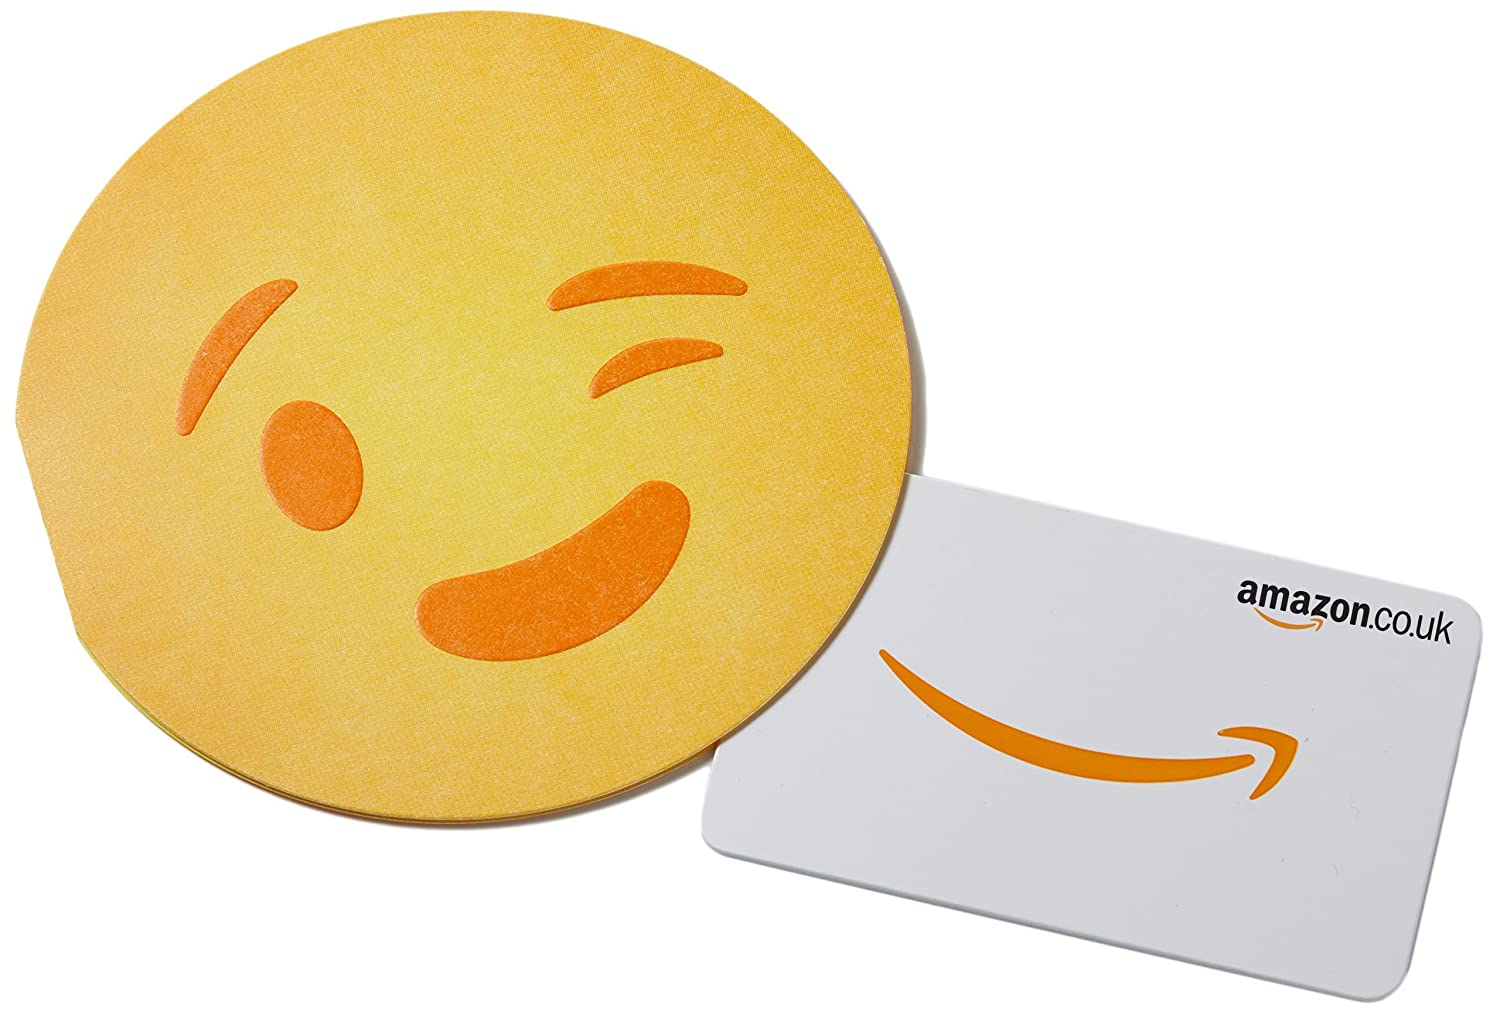 Amazon.co.uk Gift Card in a Wink Emoji Sleeve Amazon EU S.à.r.l. Fixed